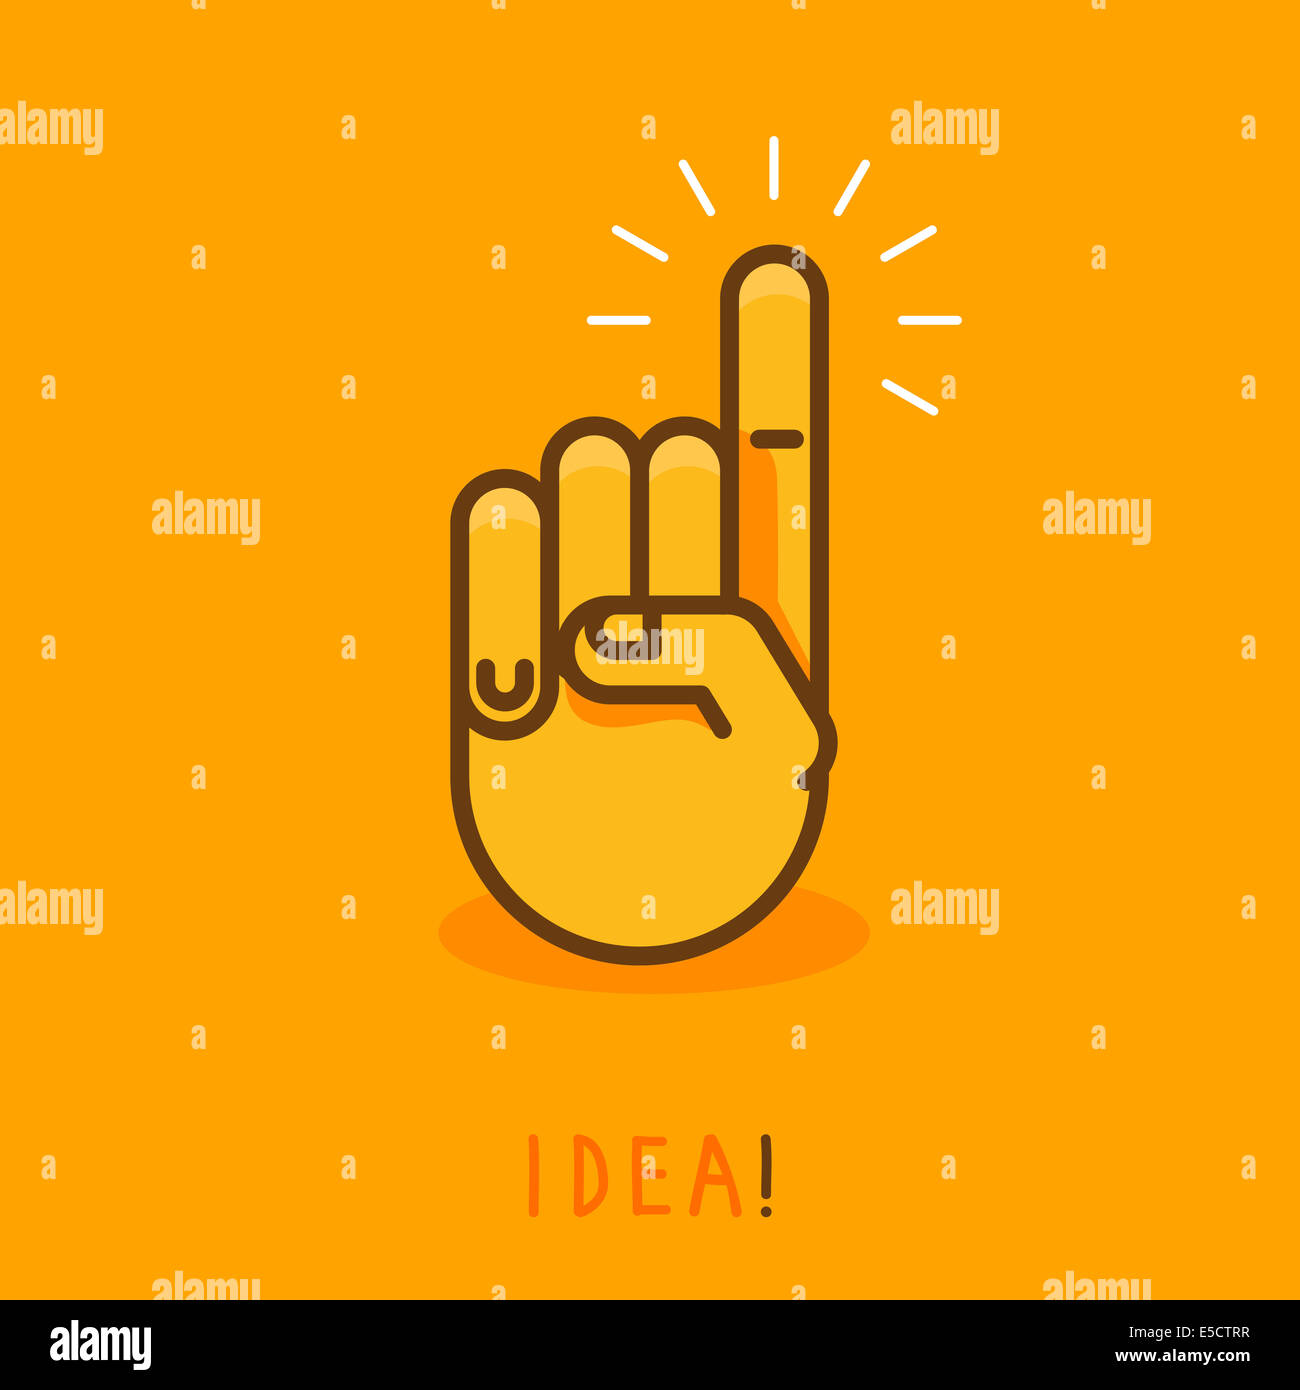 abstract creative concept - hand icon with finger pointing up - illustration in outline style - Stock Image